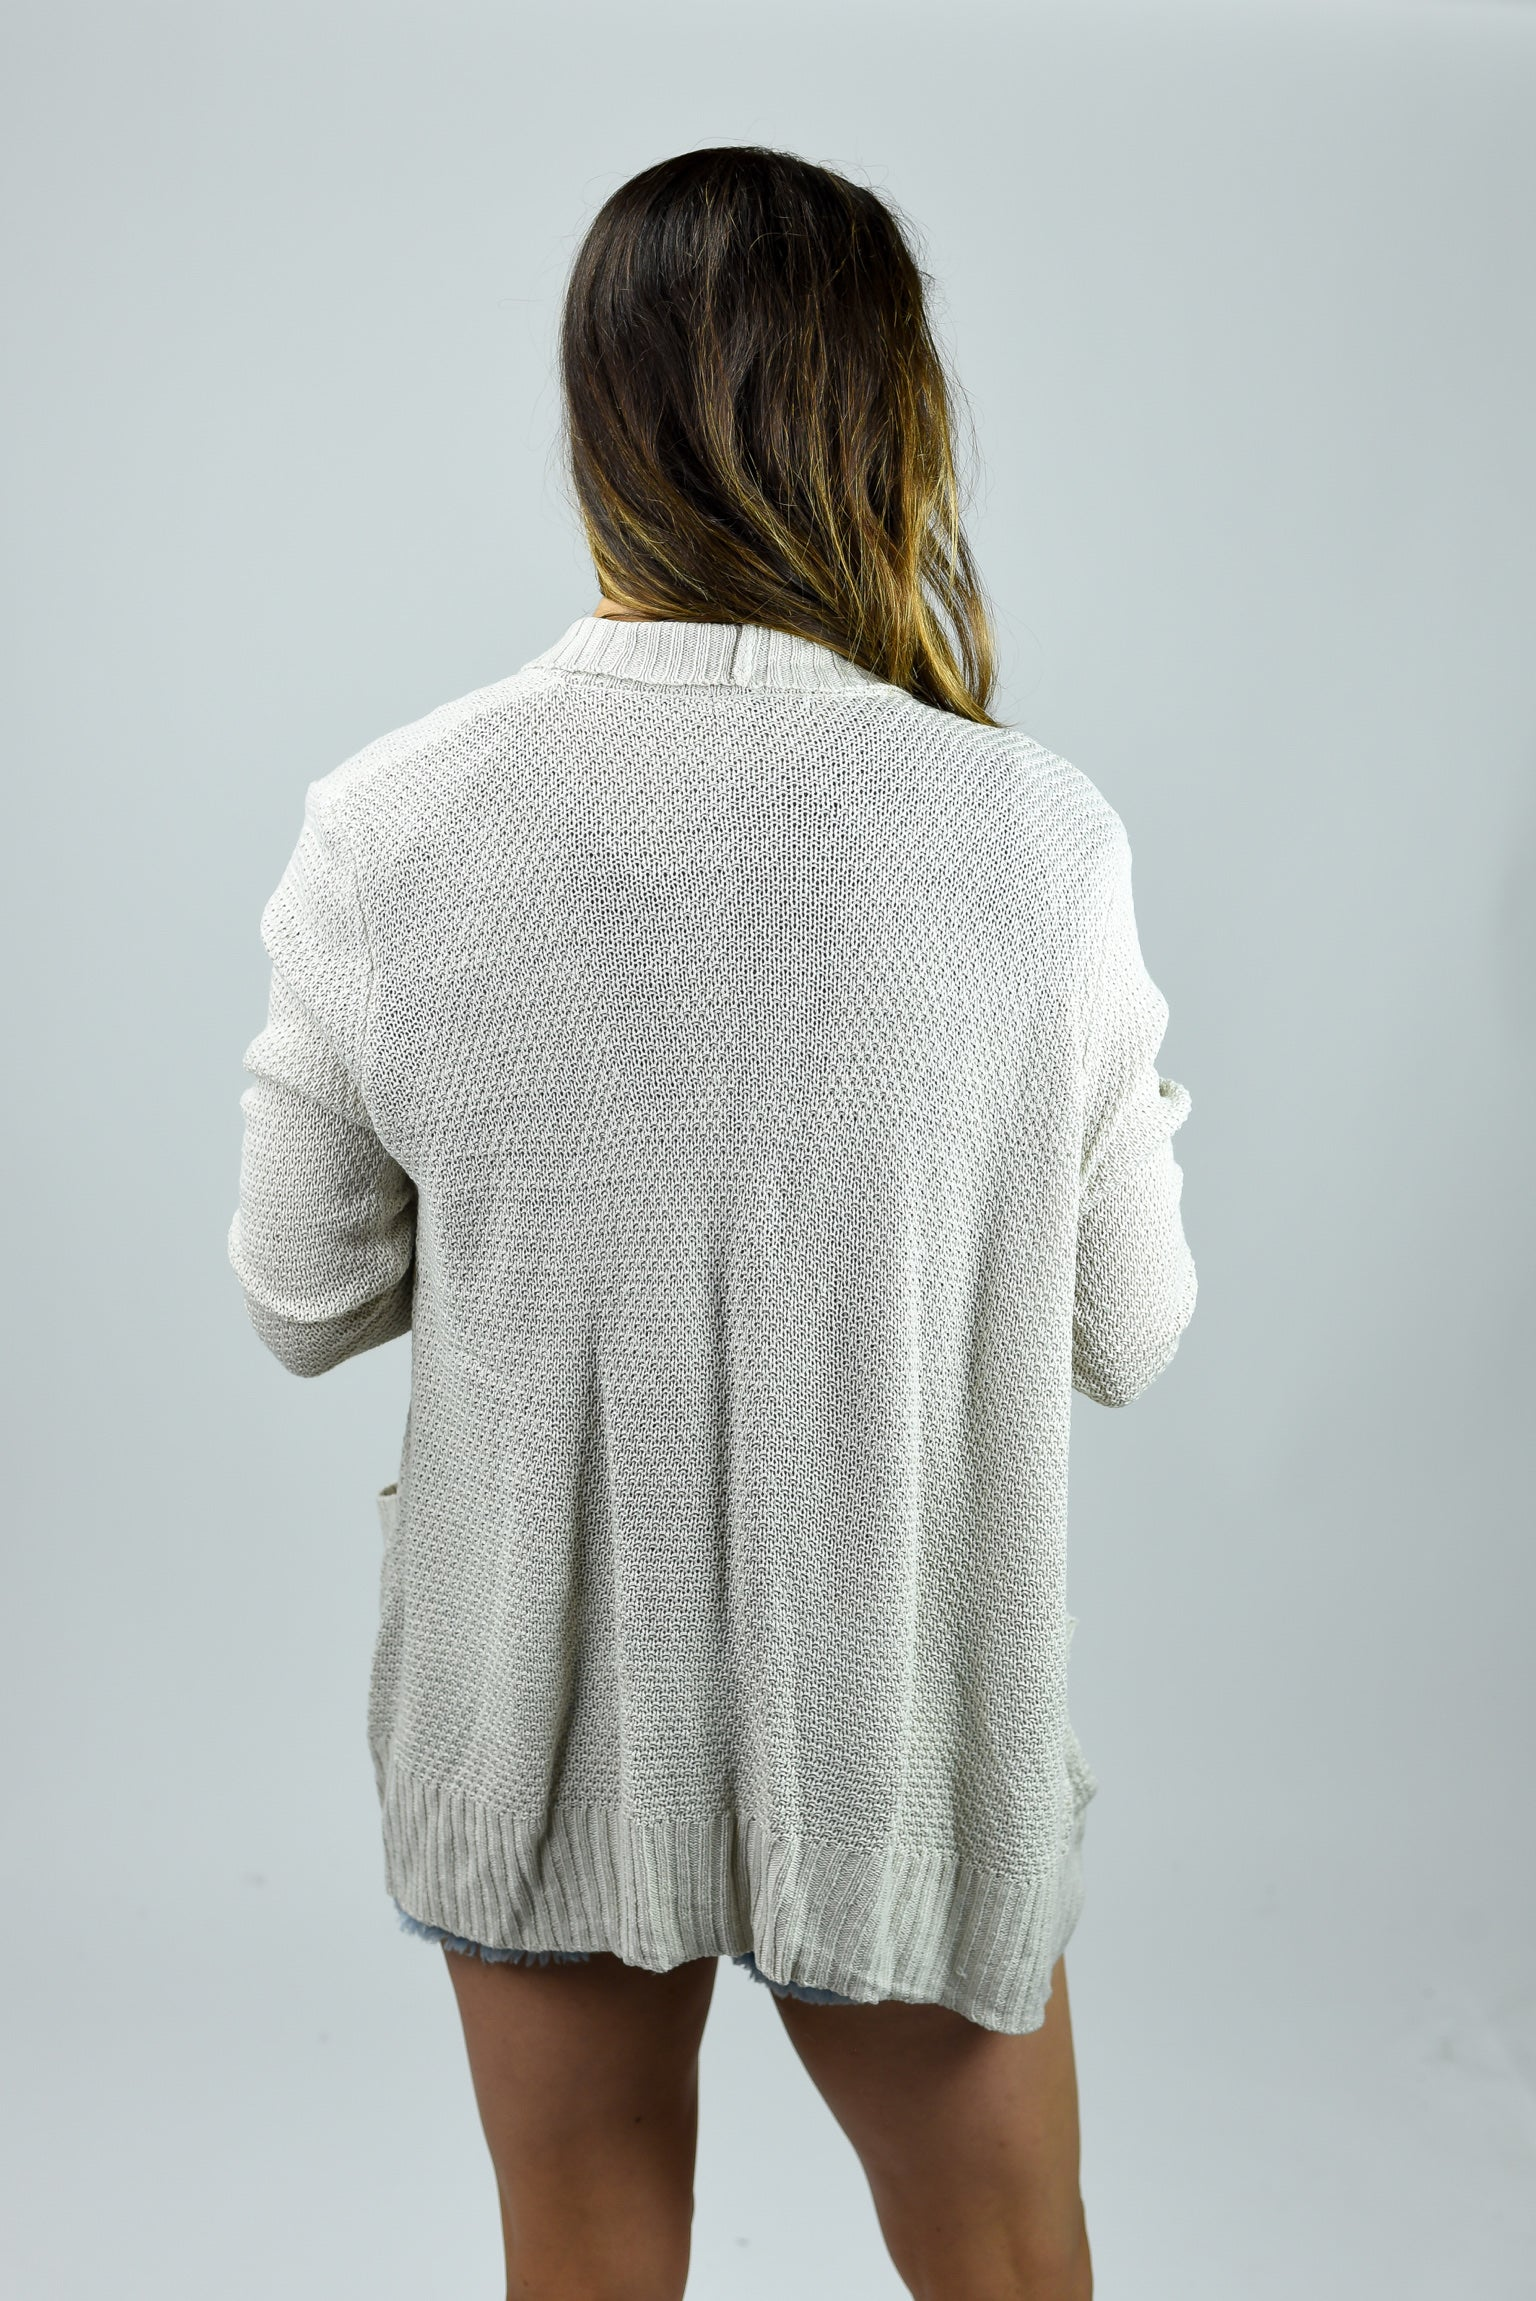 My Everyday Cardigan - Oatmeal